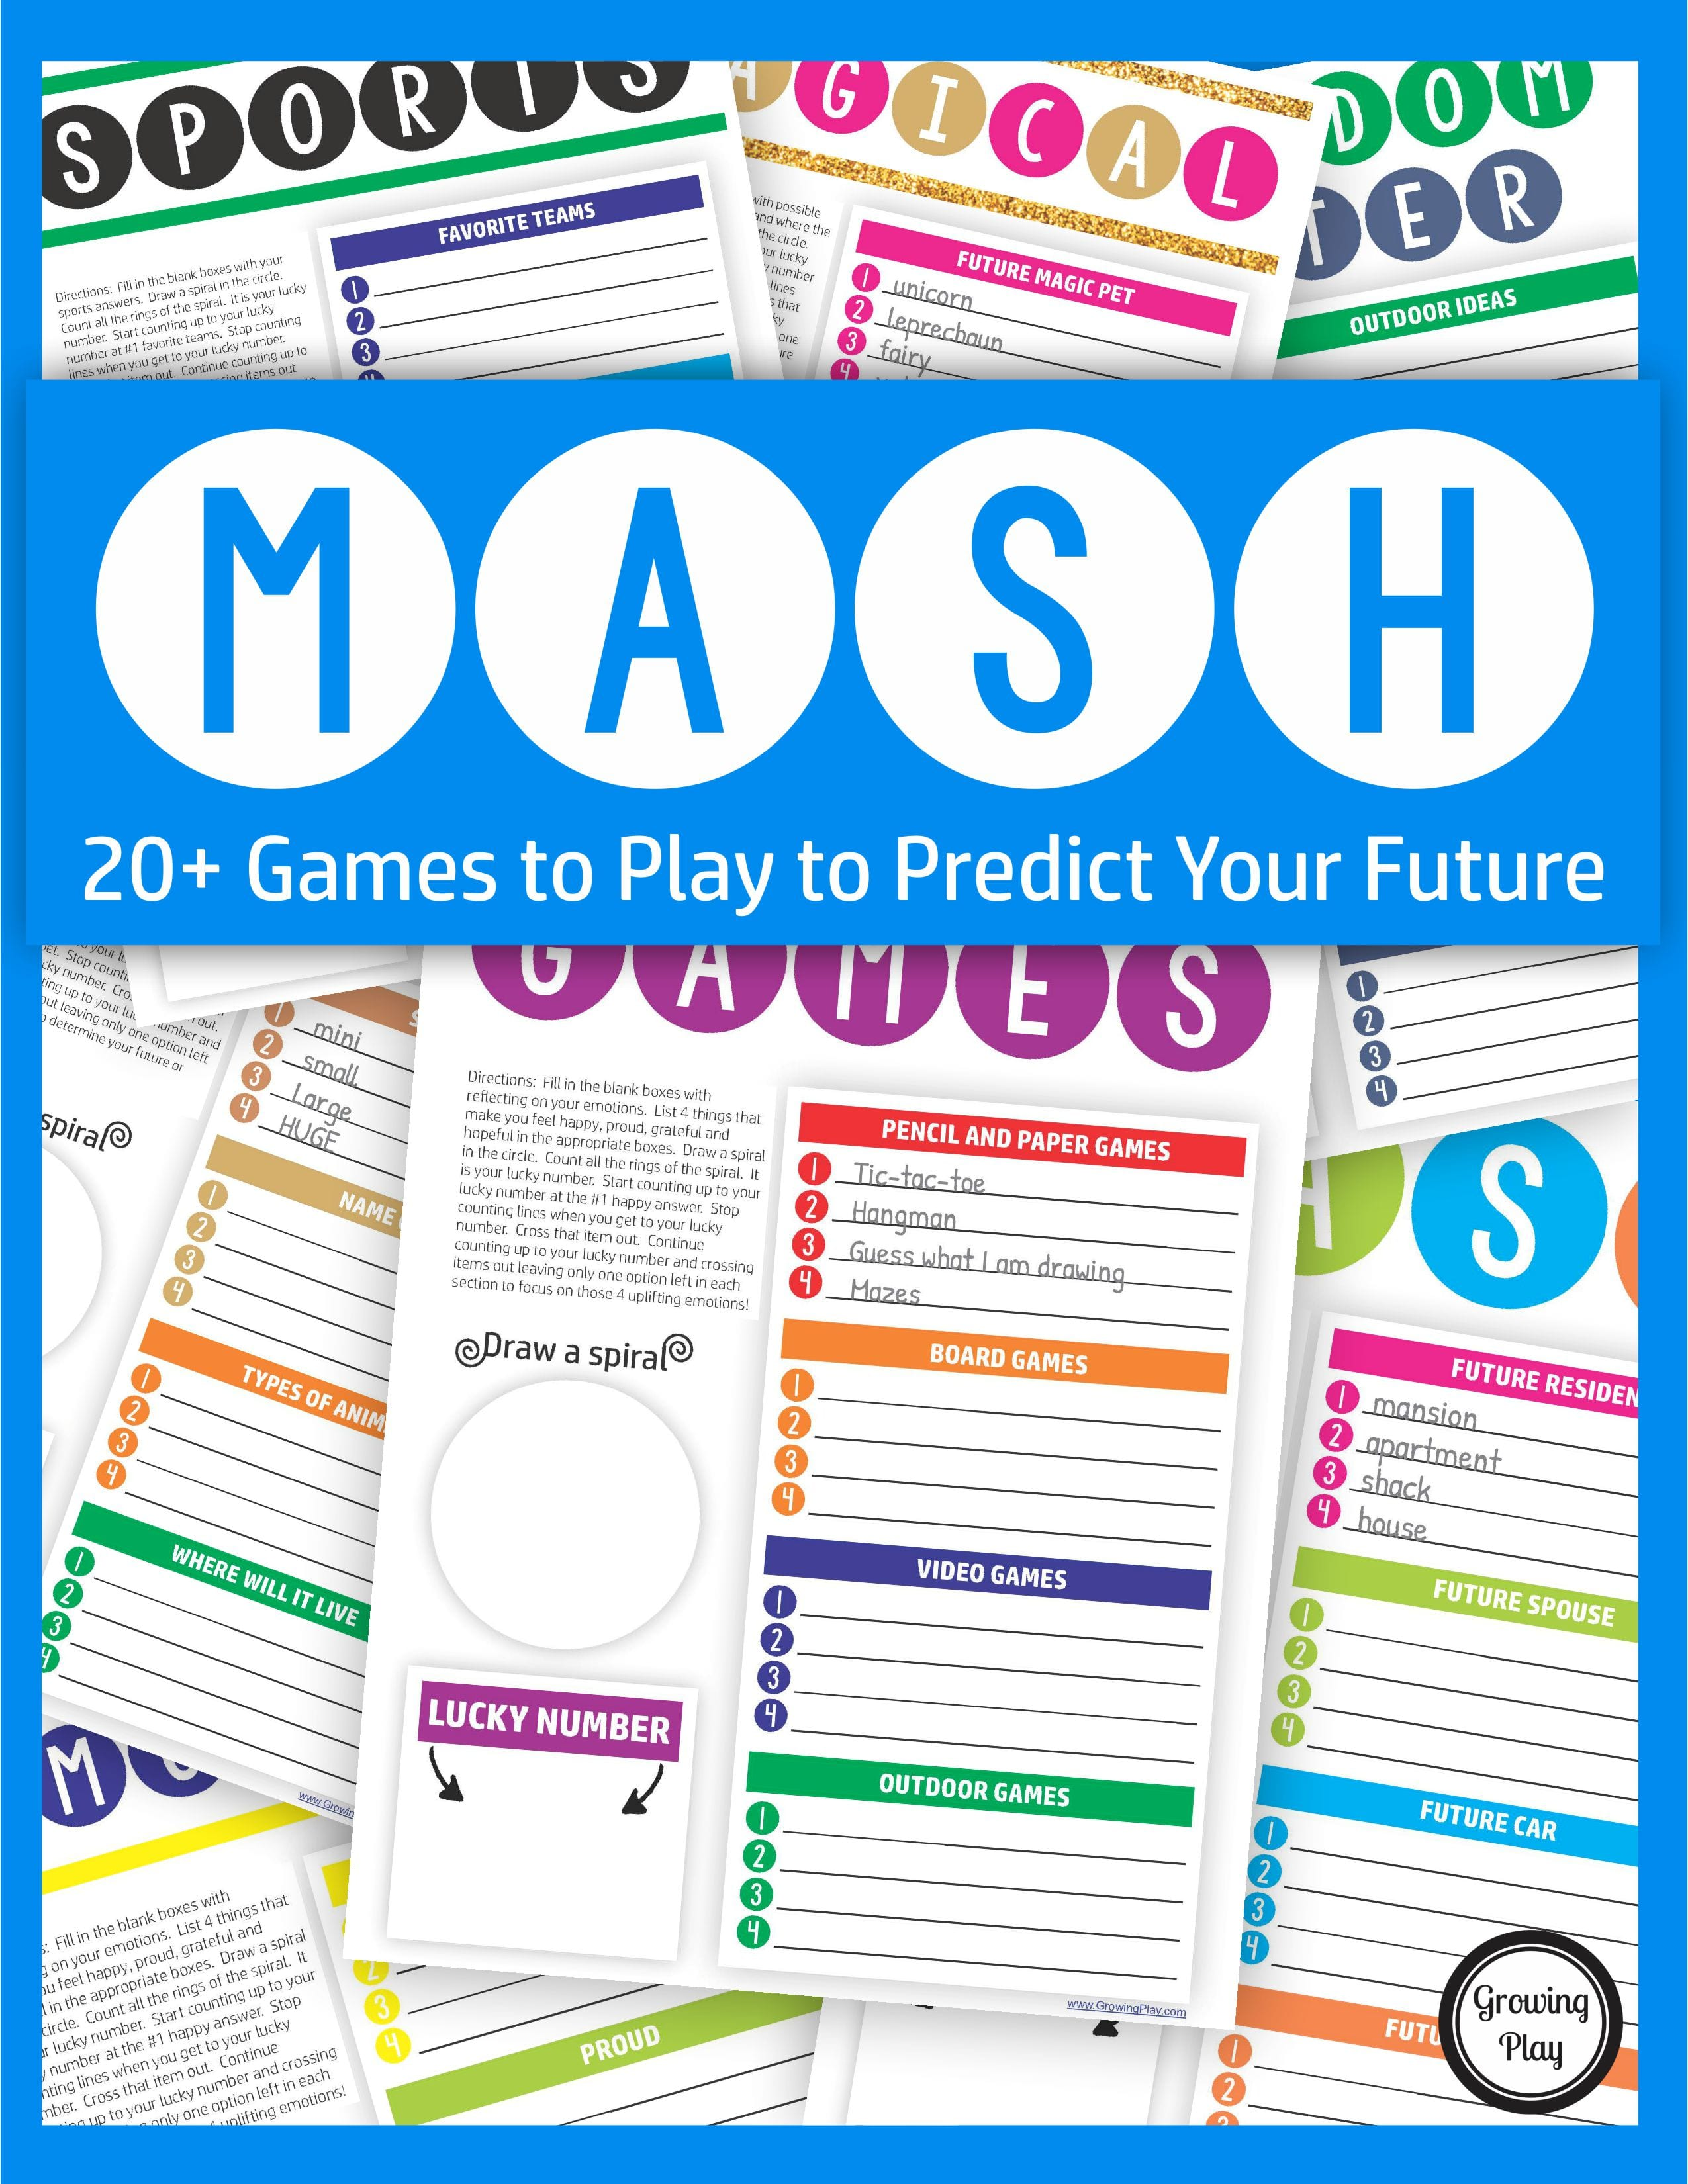 Includes fun handwriting worksheets with 20+ MASH Games plus handwriting templates. Be silly with these creative, boredom busting games!